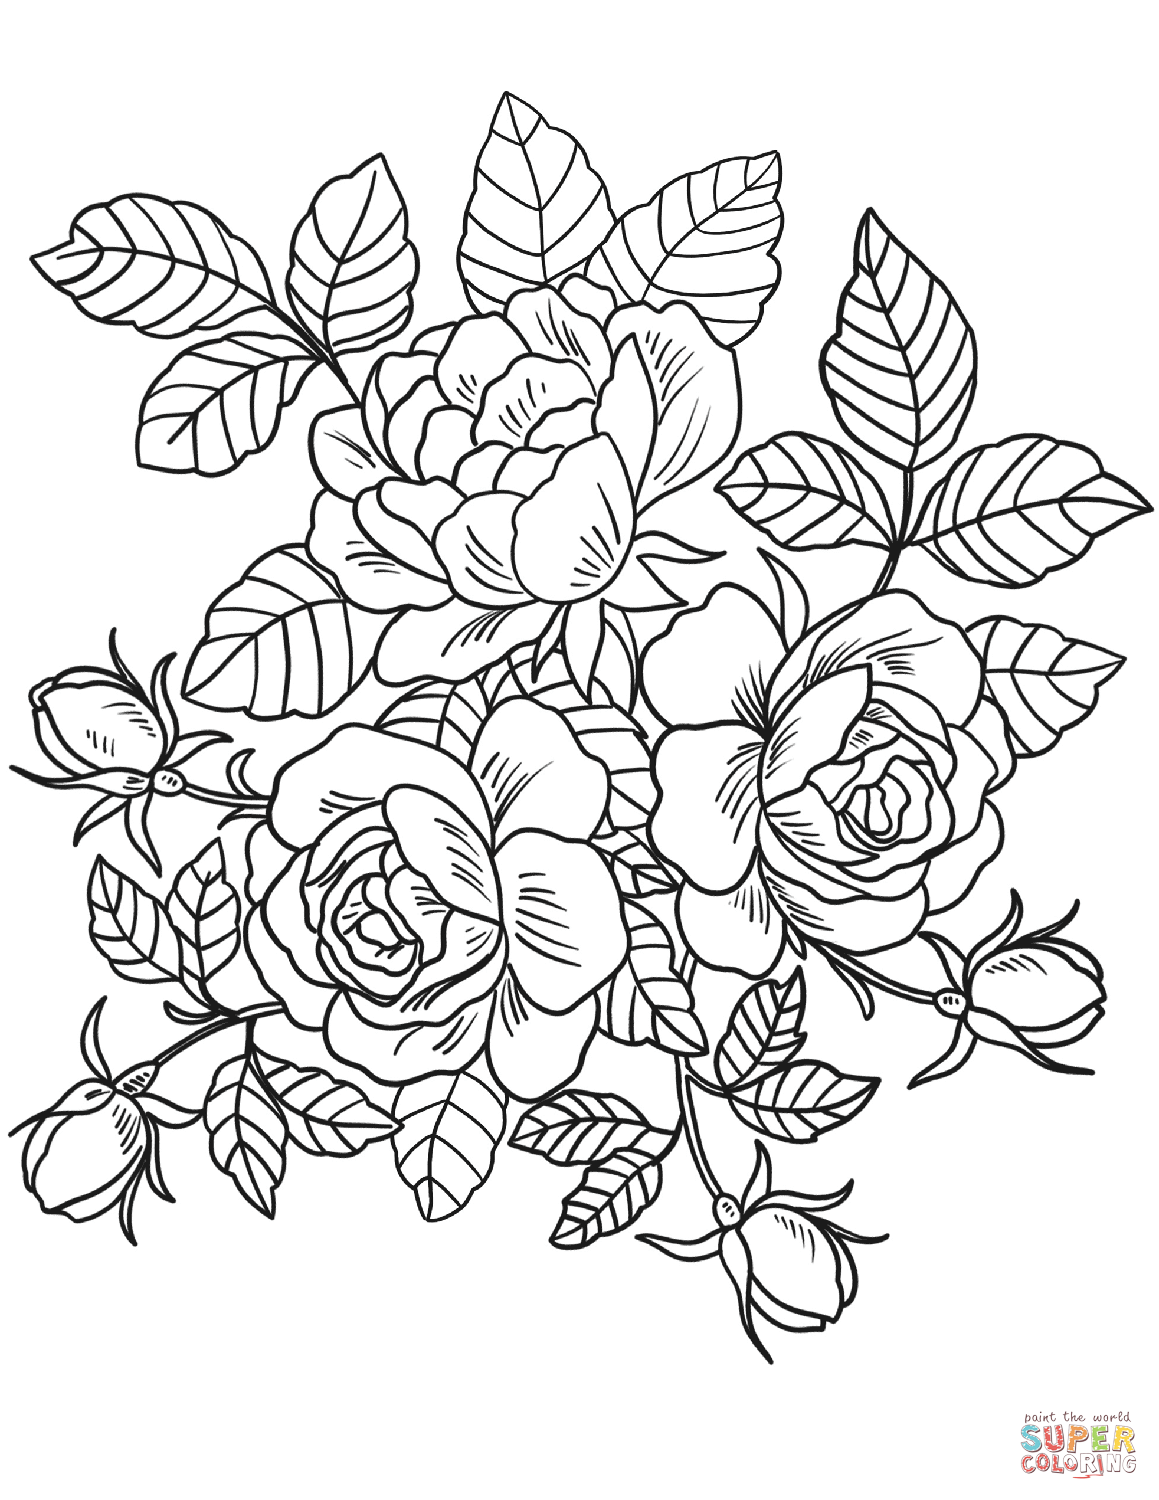 Roses Flowers Super Coloring